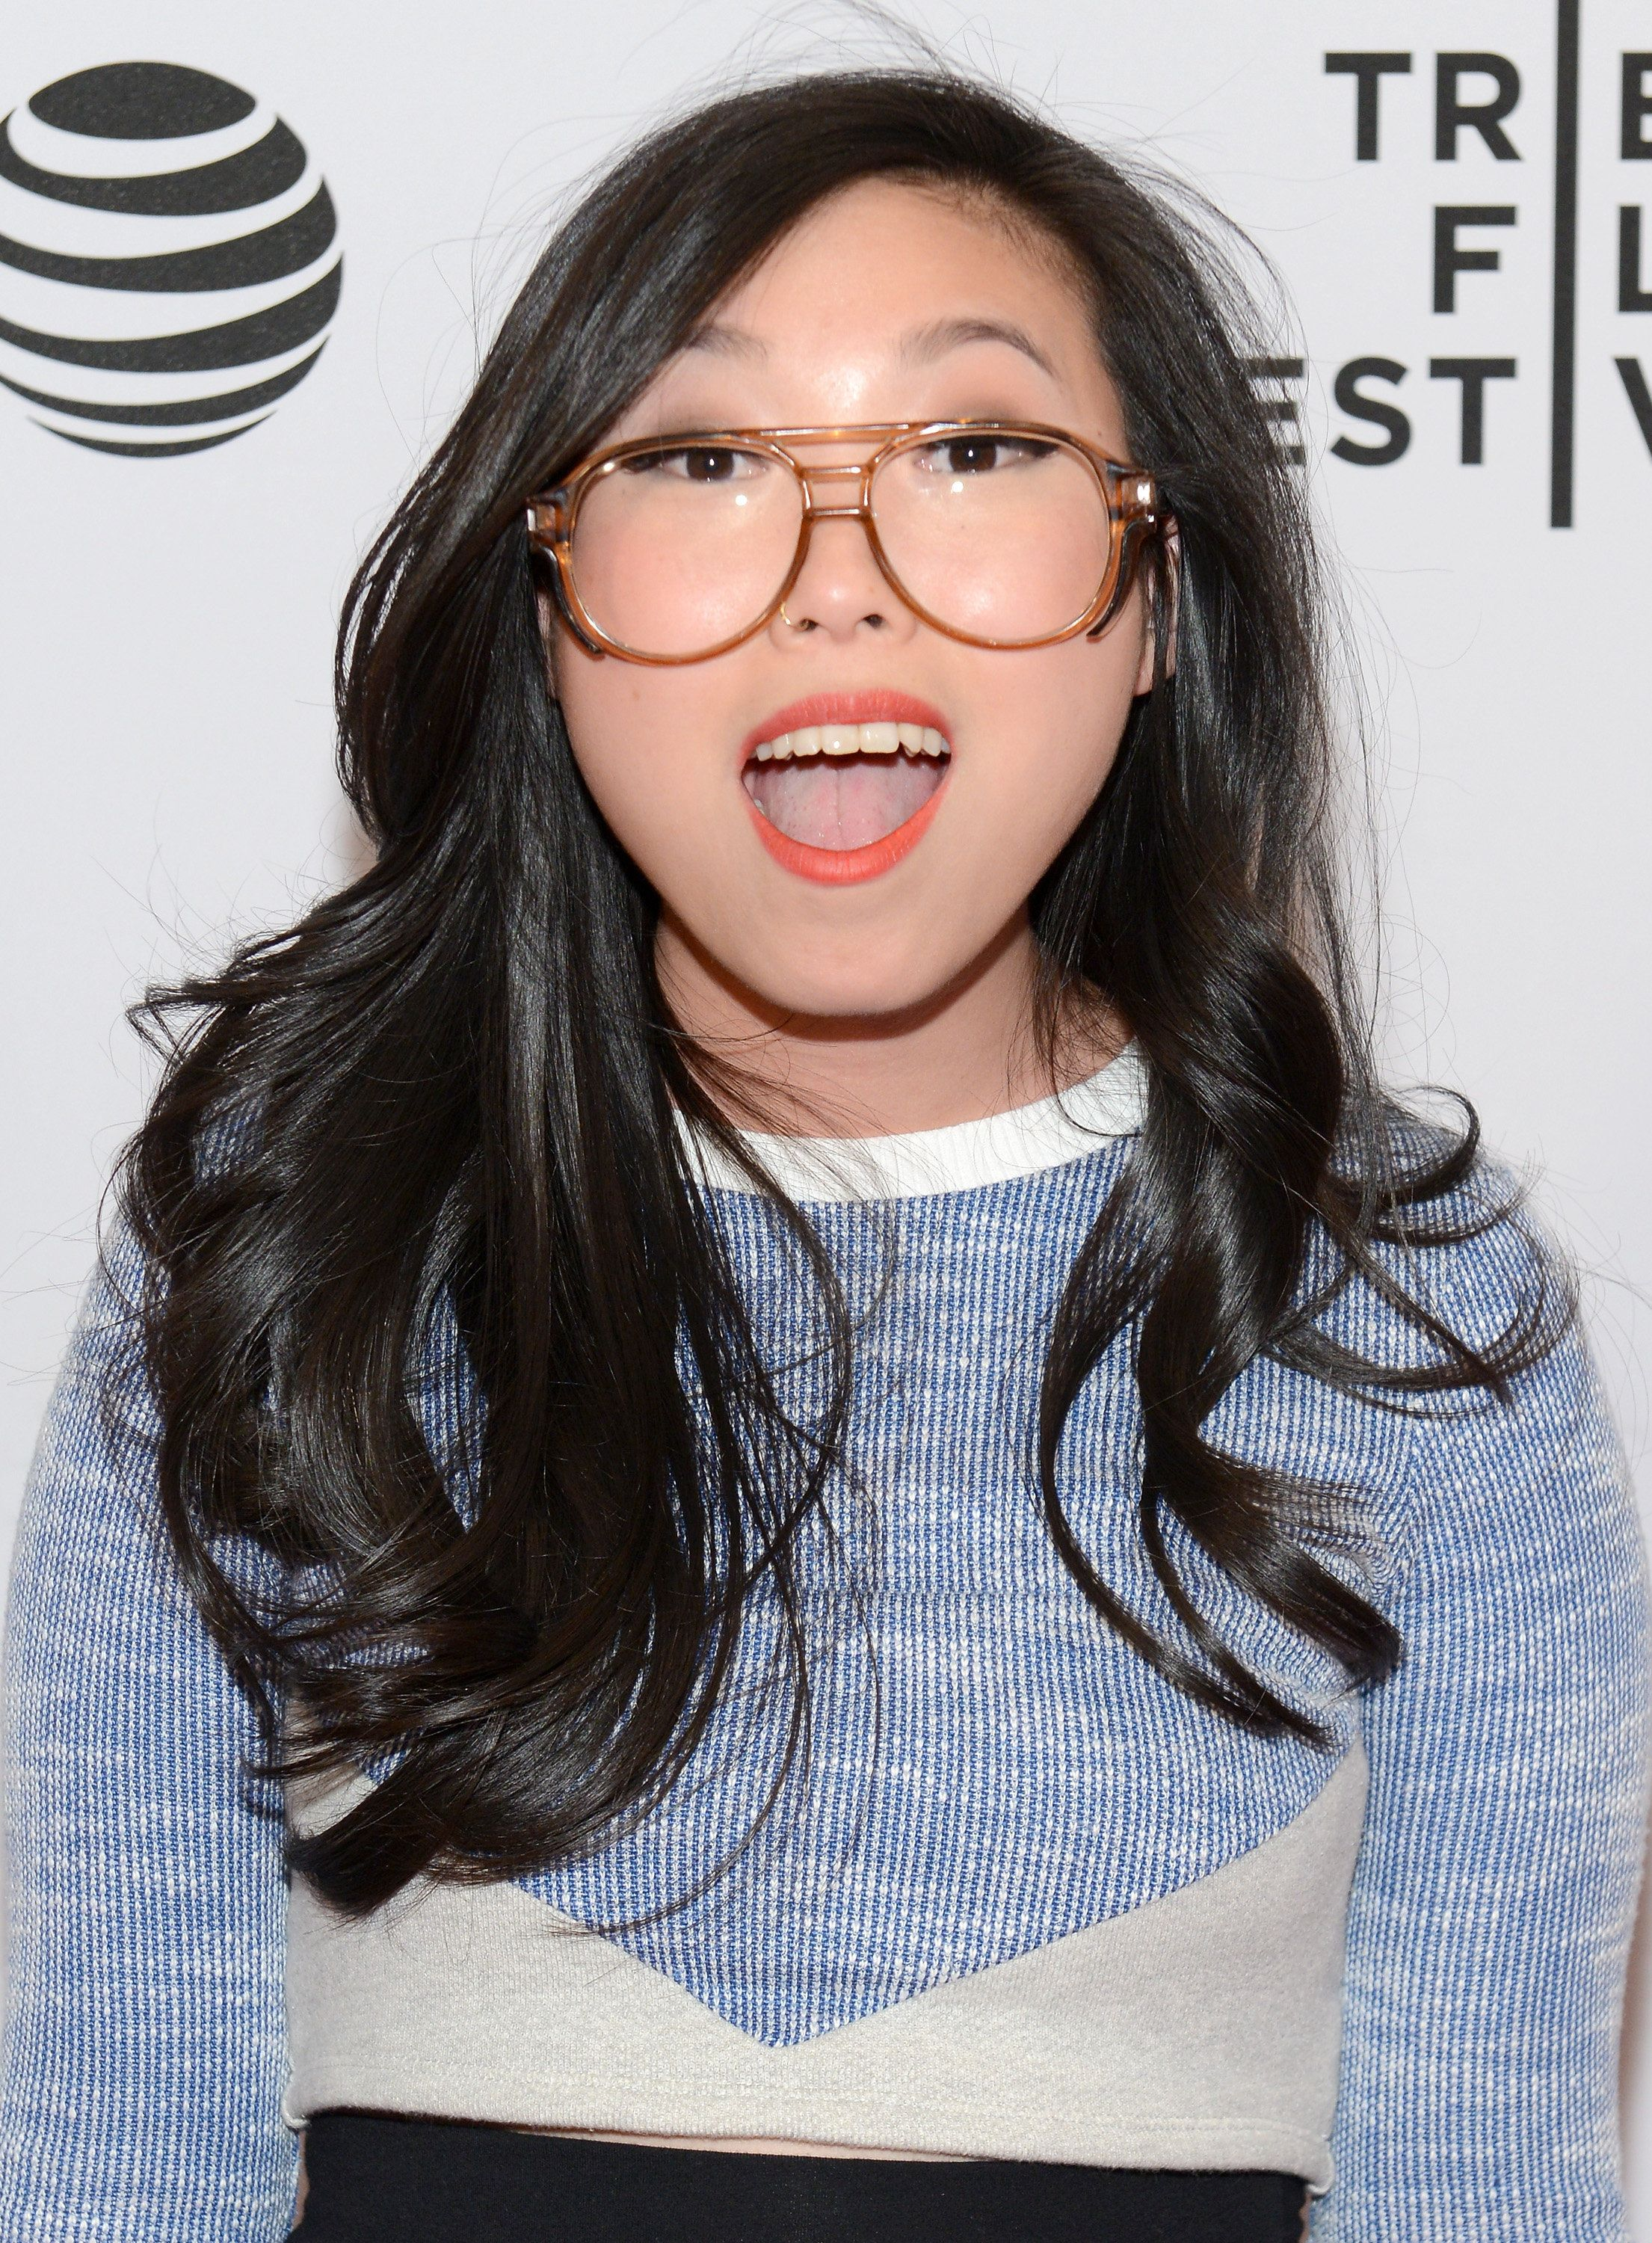 Rapper Awkwafina attends the 'Bad Rap' Premiere during the 2016 Tribeca Film Festival.